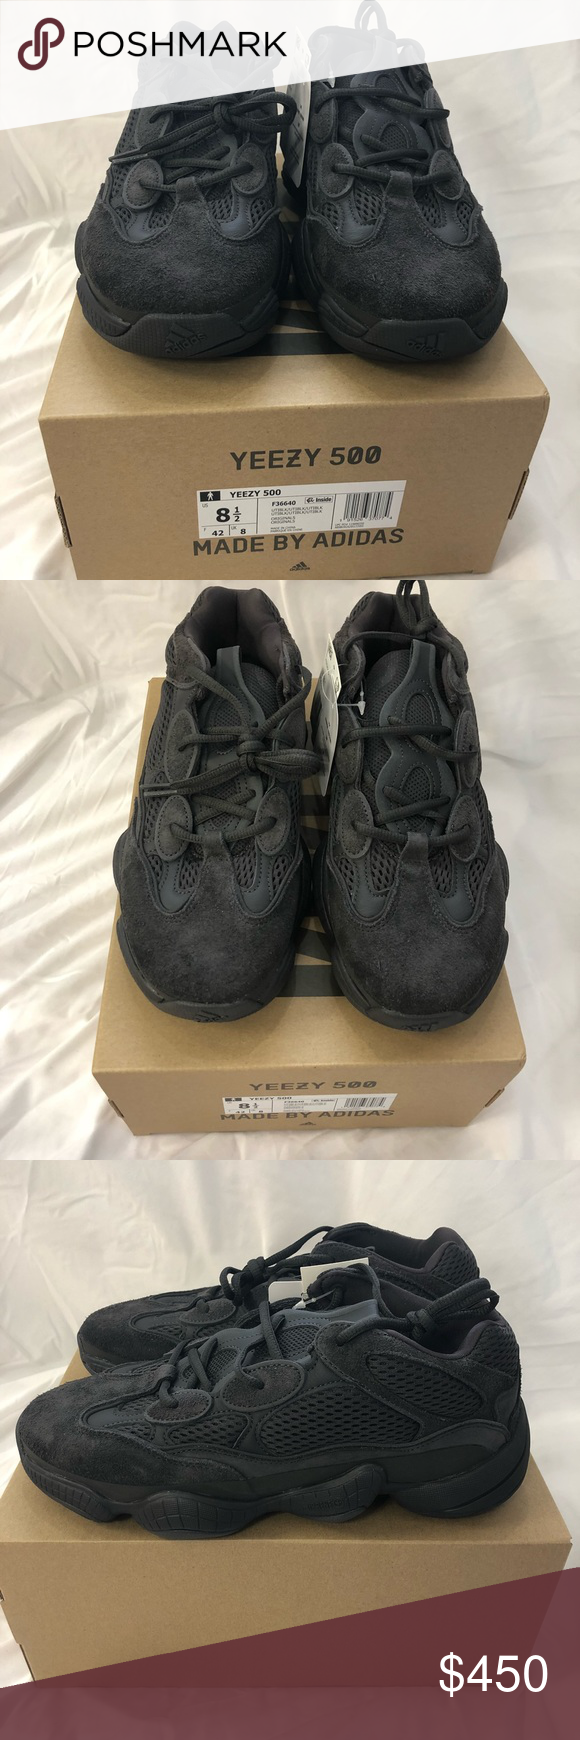 c8ff7fd48 NWT Utility Black Yeezy 500 Brand new in box Utility Black Yeezy 500s in size  8 1 2. This is a men s sized shoe. Yeezy Shoes Sneakers